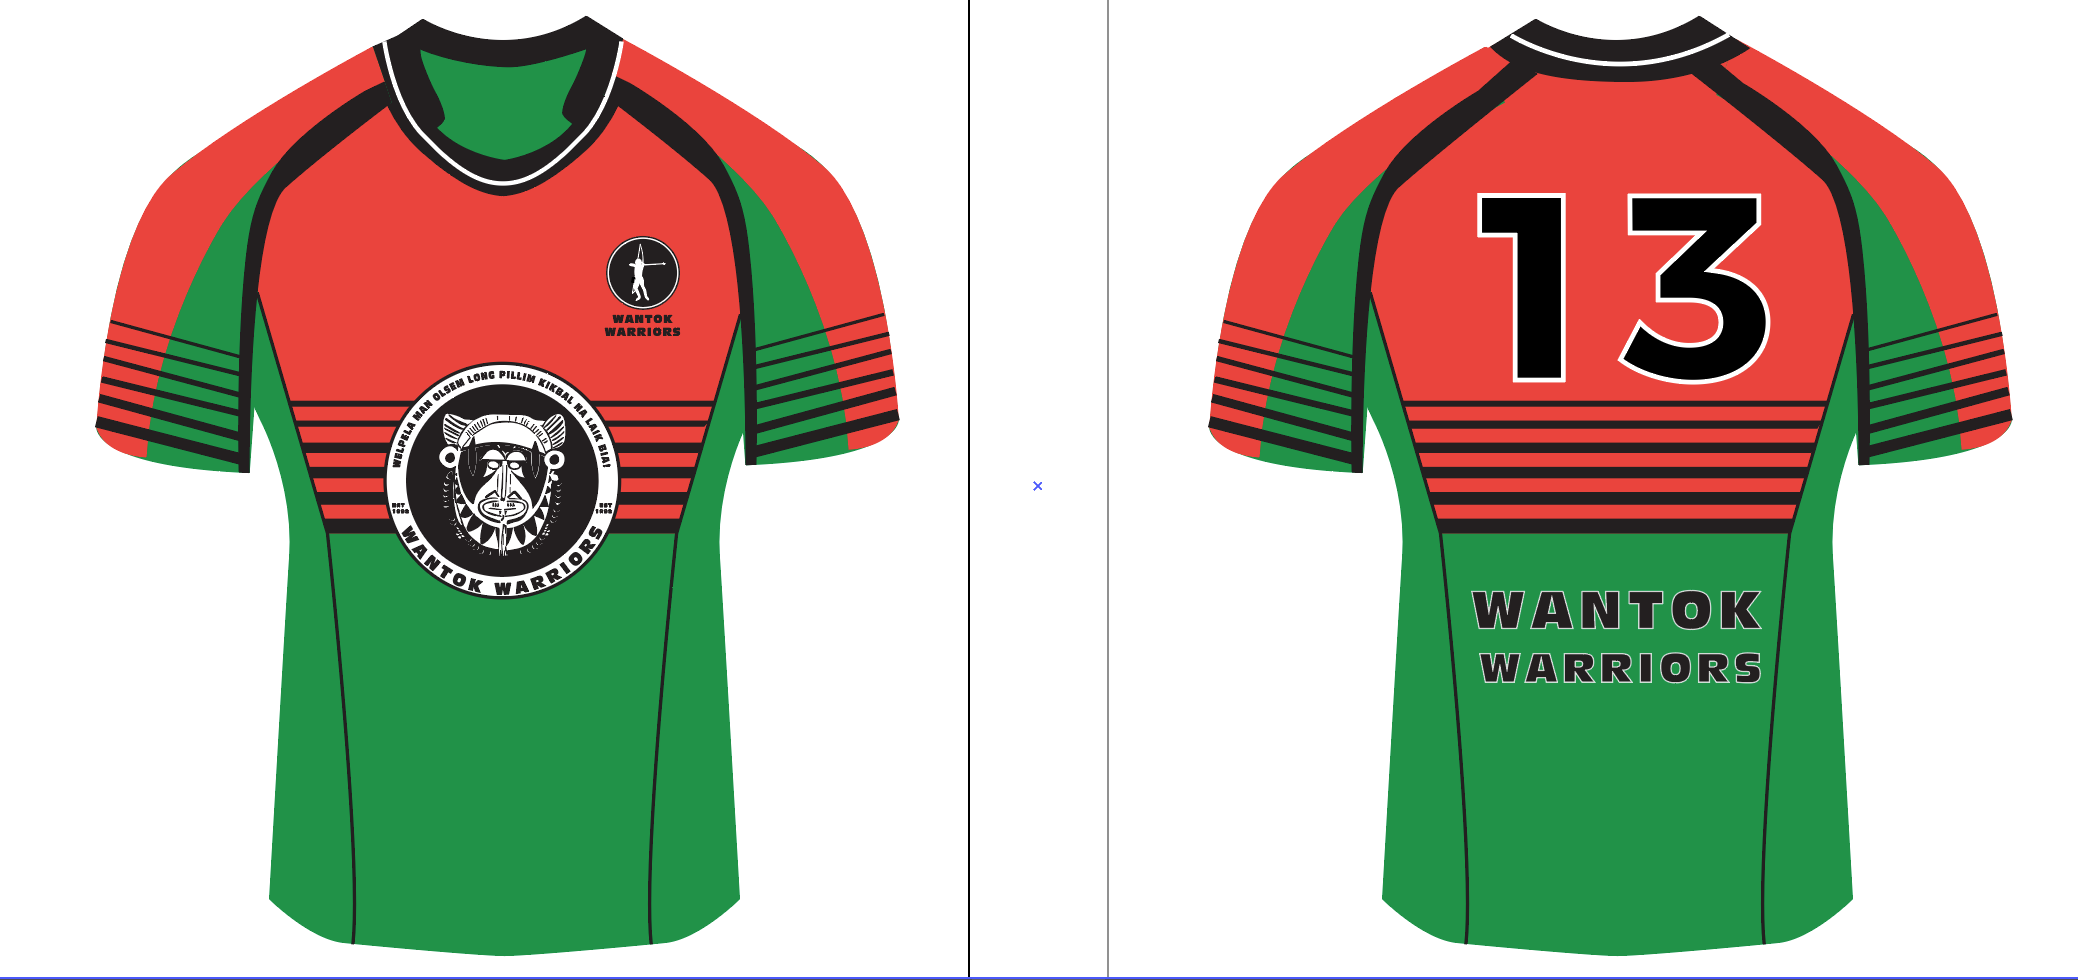 Wantok Warriors rugby jersy